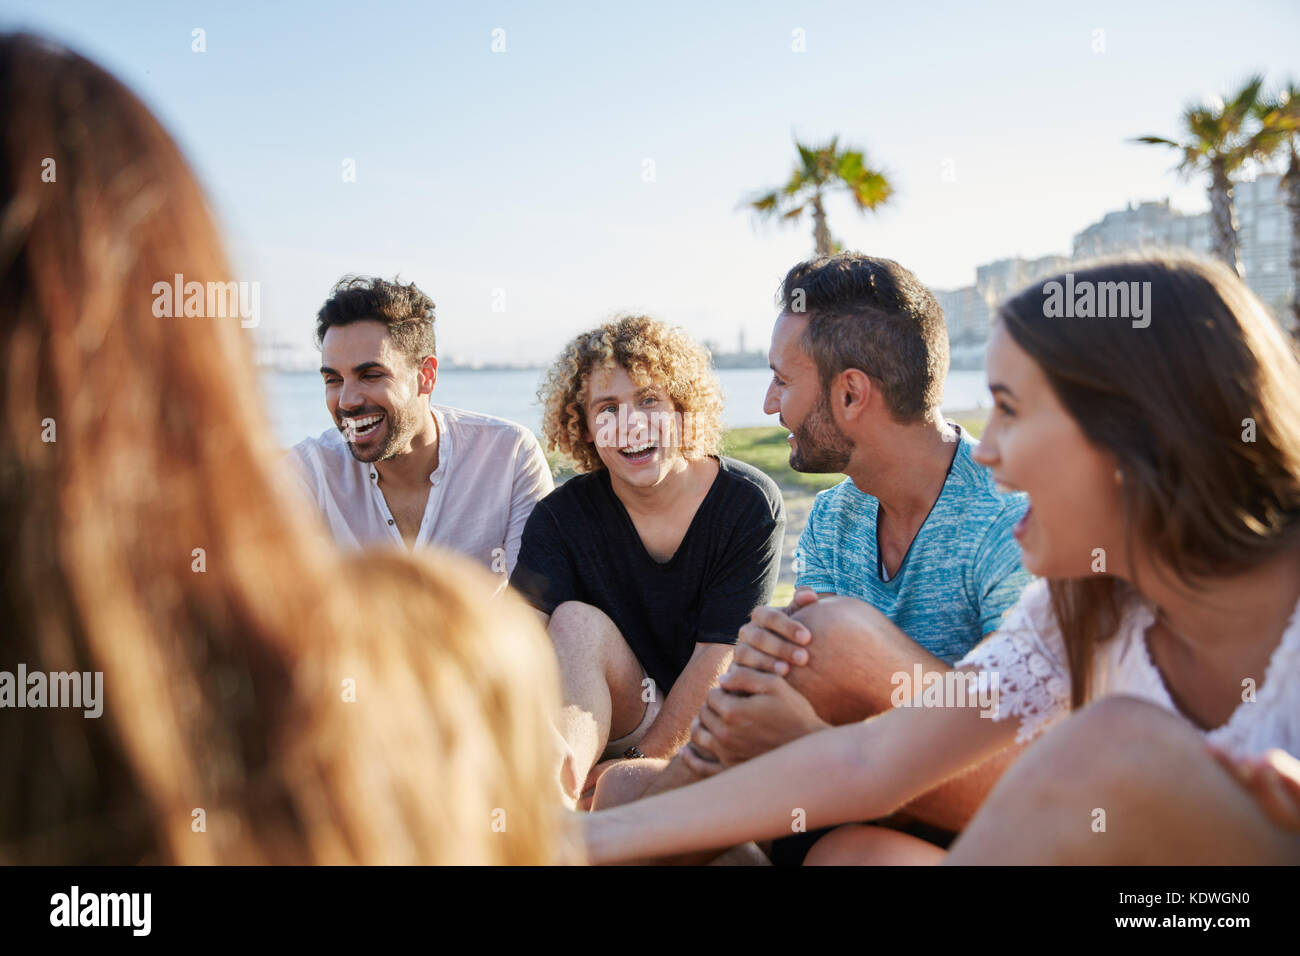 Portrait of happy friends sitting outside together laughing - Stock Image